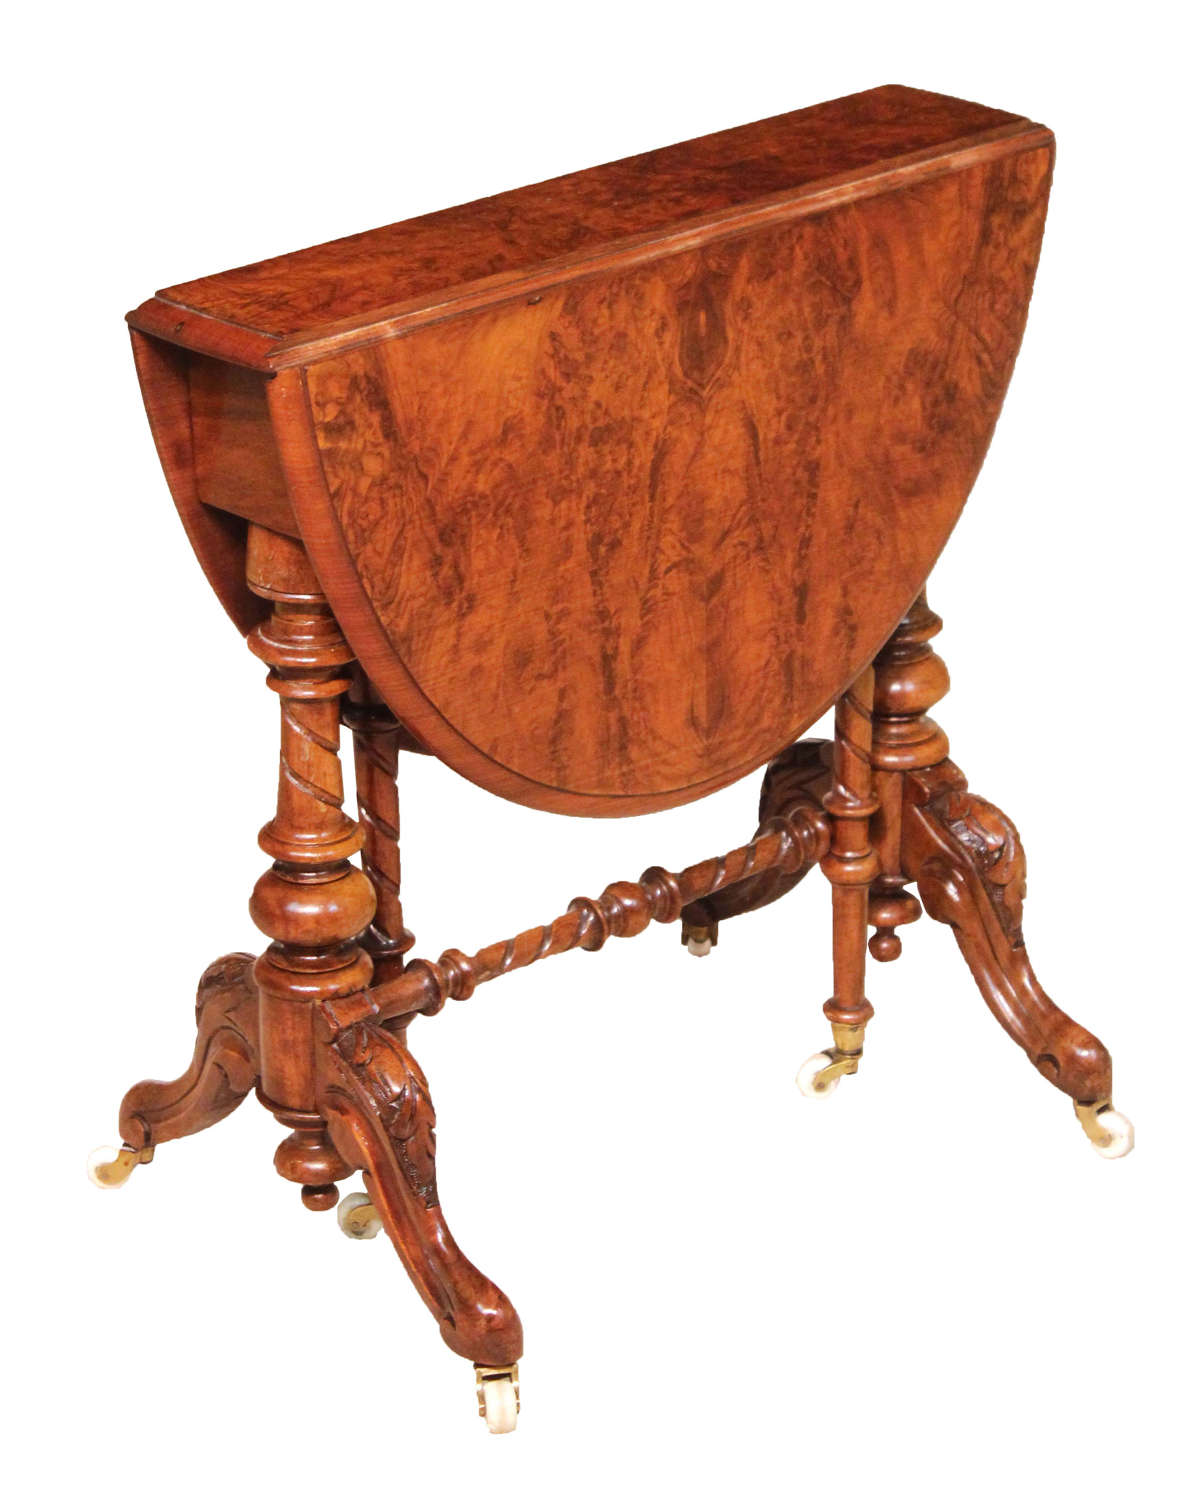 An Exquisite Victorian Burr Walnut Cabriole Leg Baby Sutherland Table